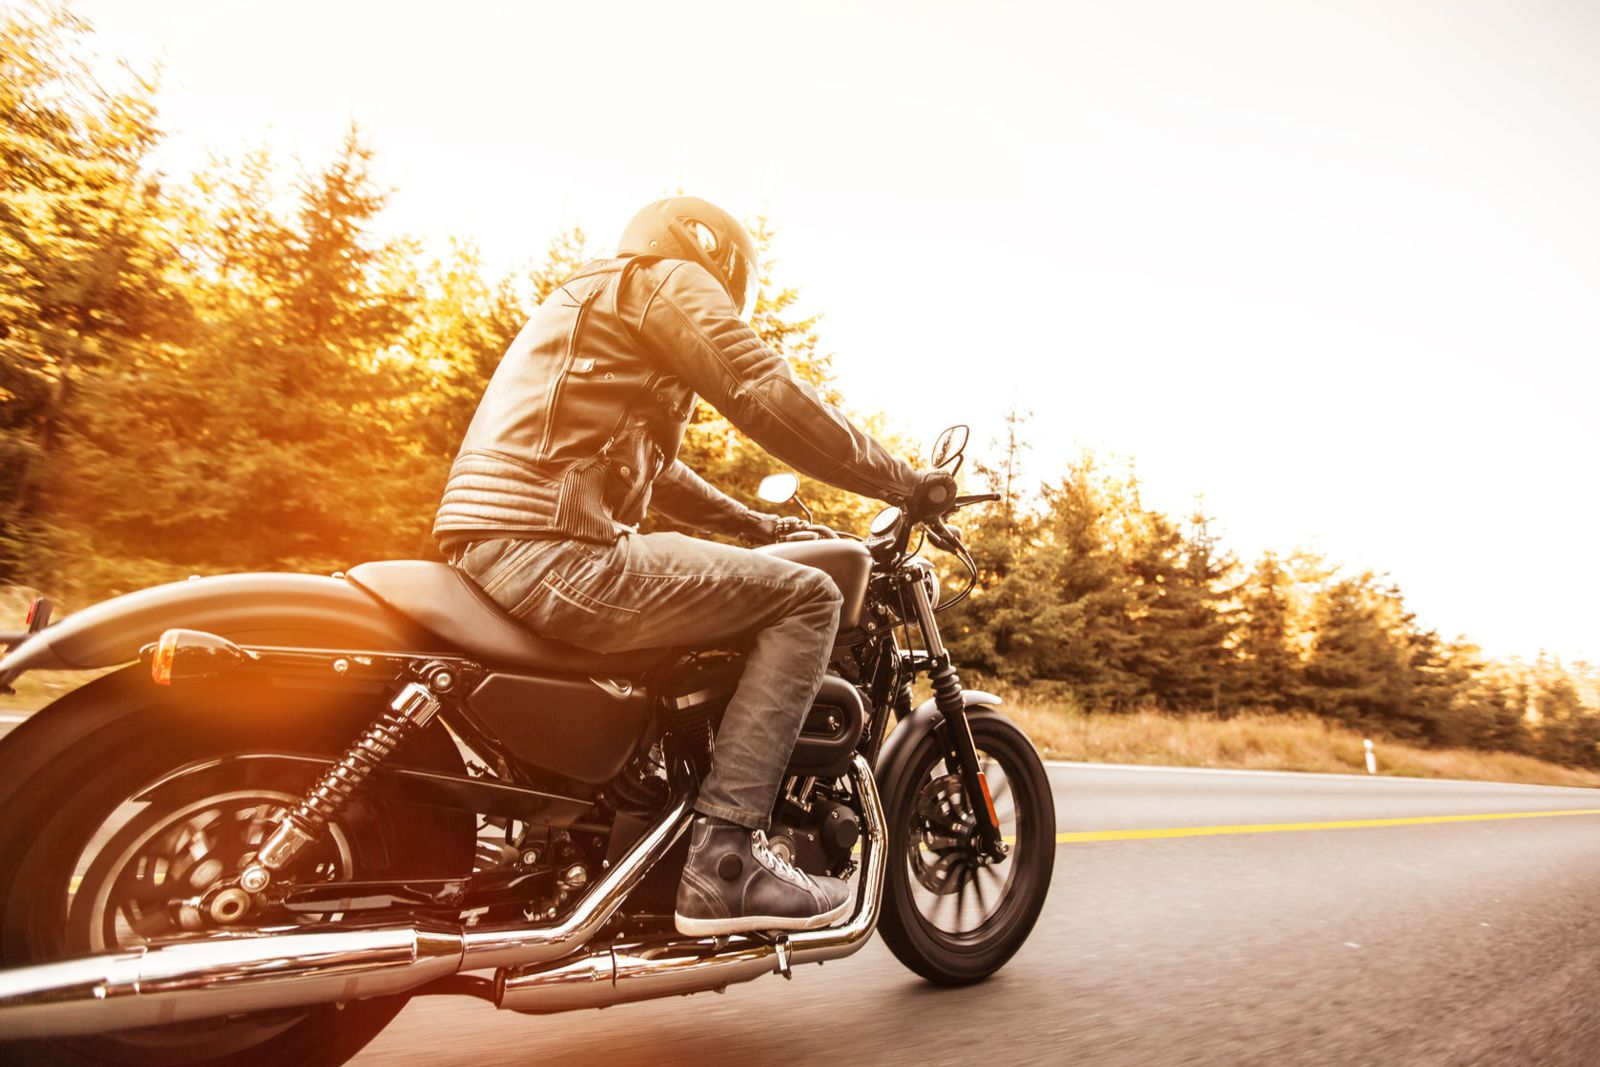 motorcycle accident prevention